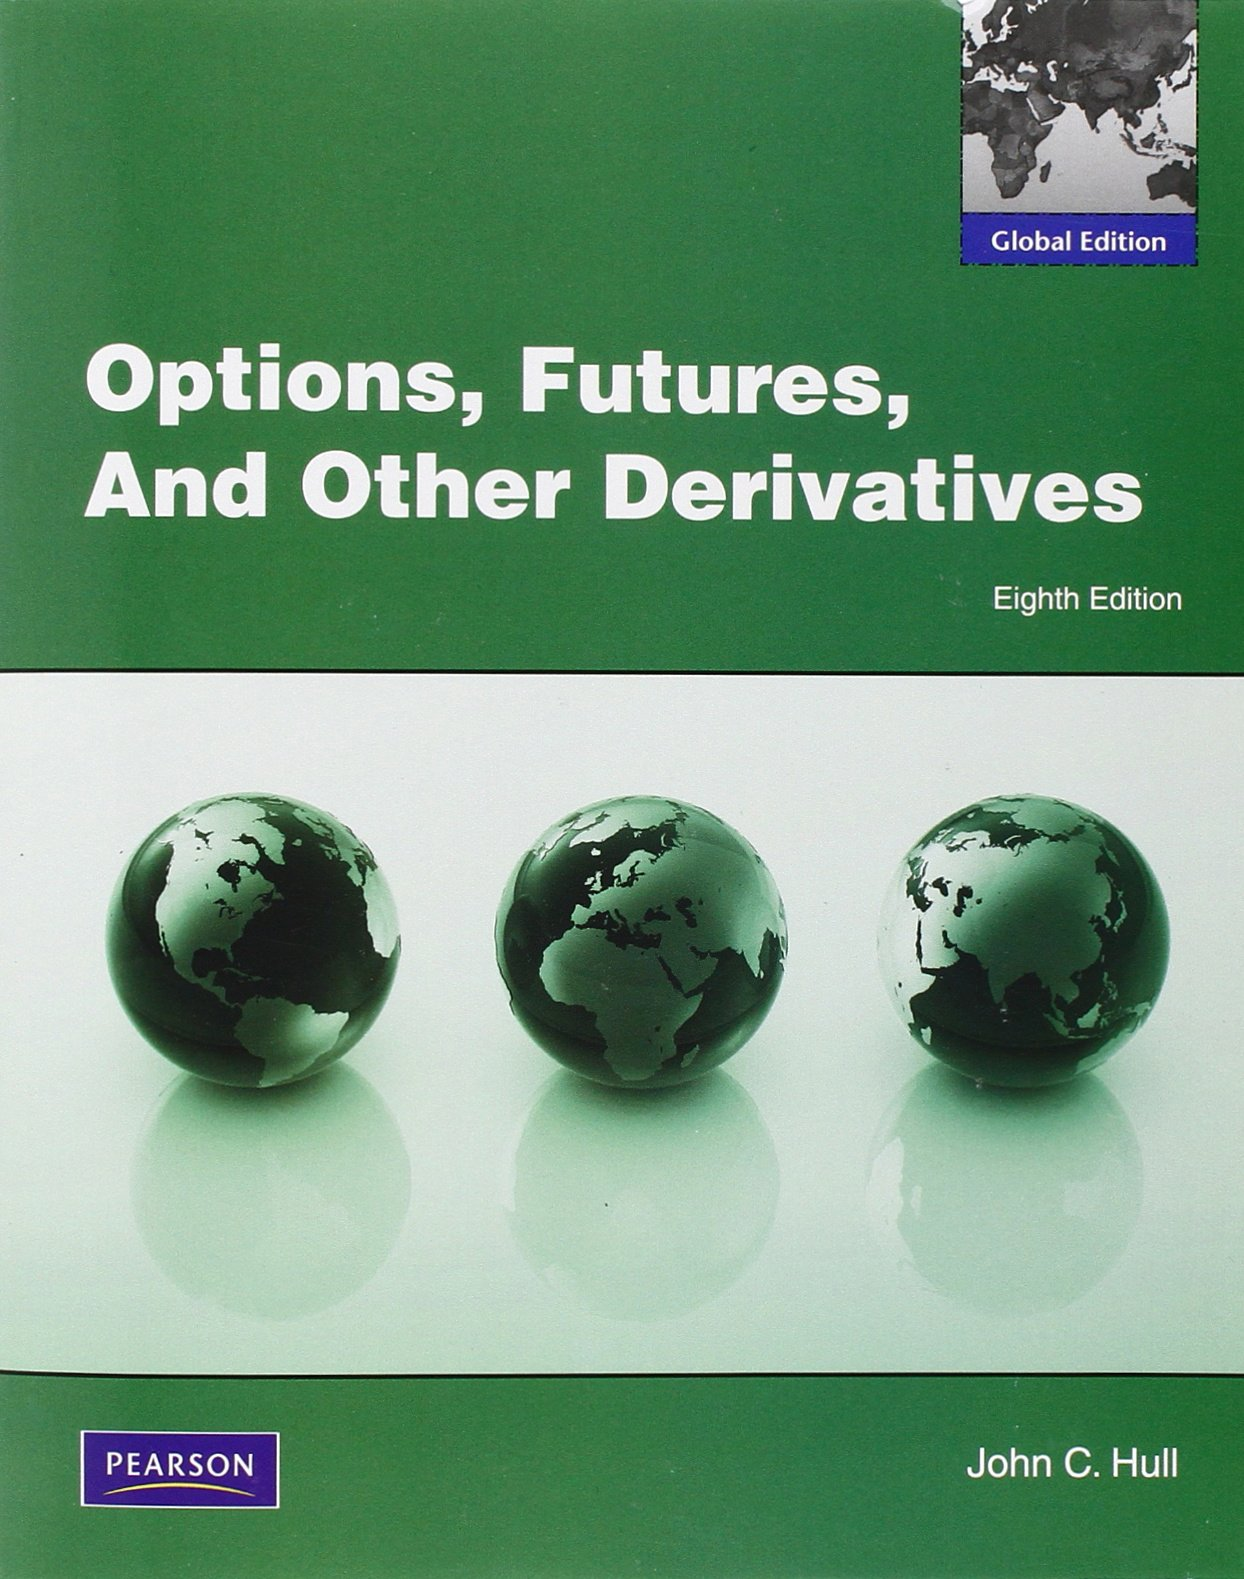 Options Futures And Other Derivatives 10th Edition Pdf